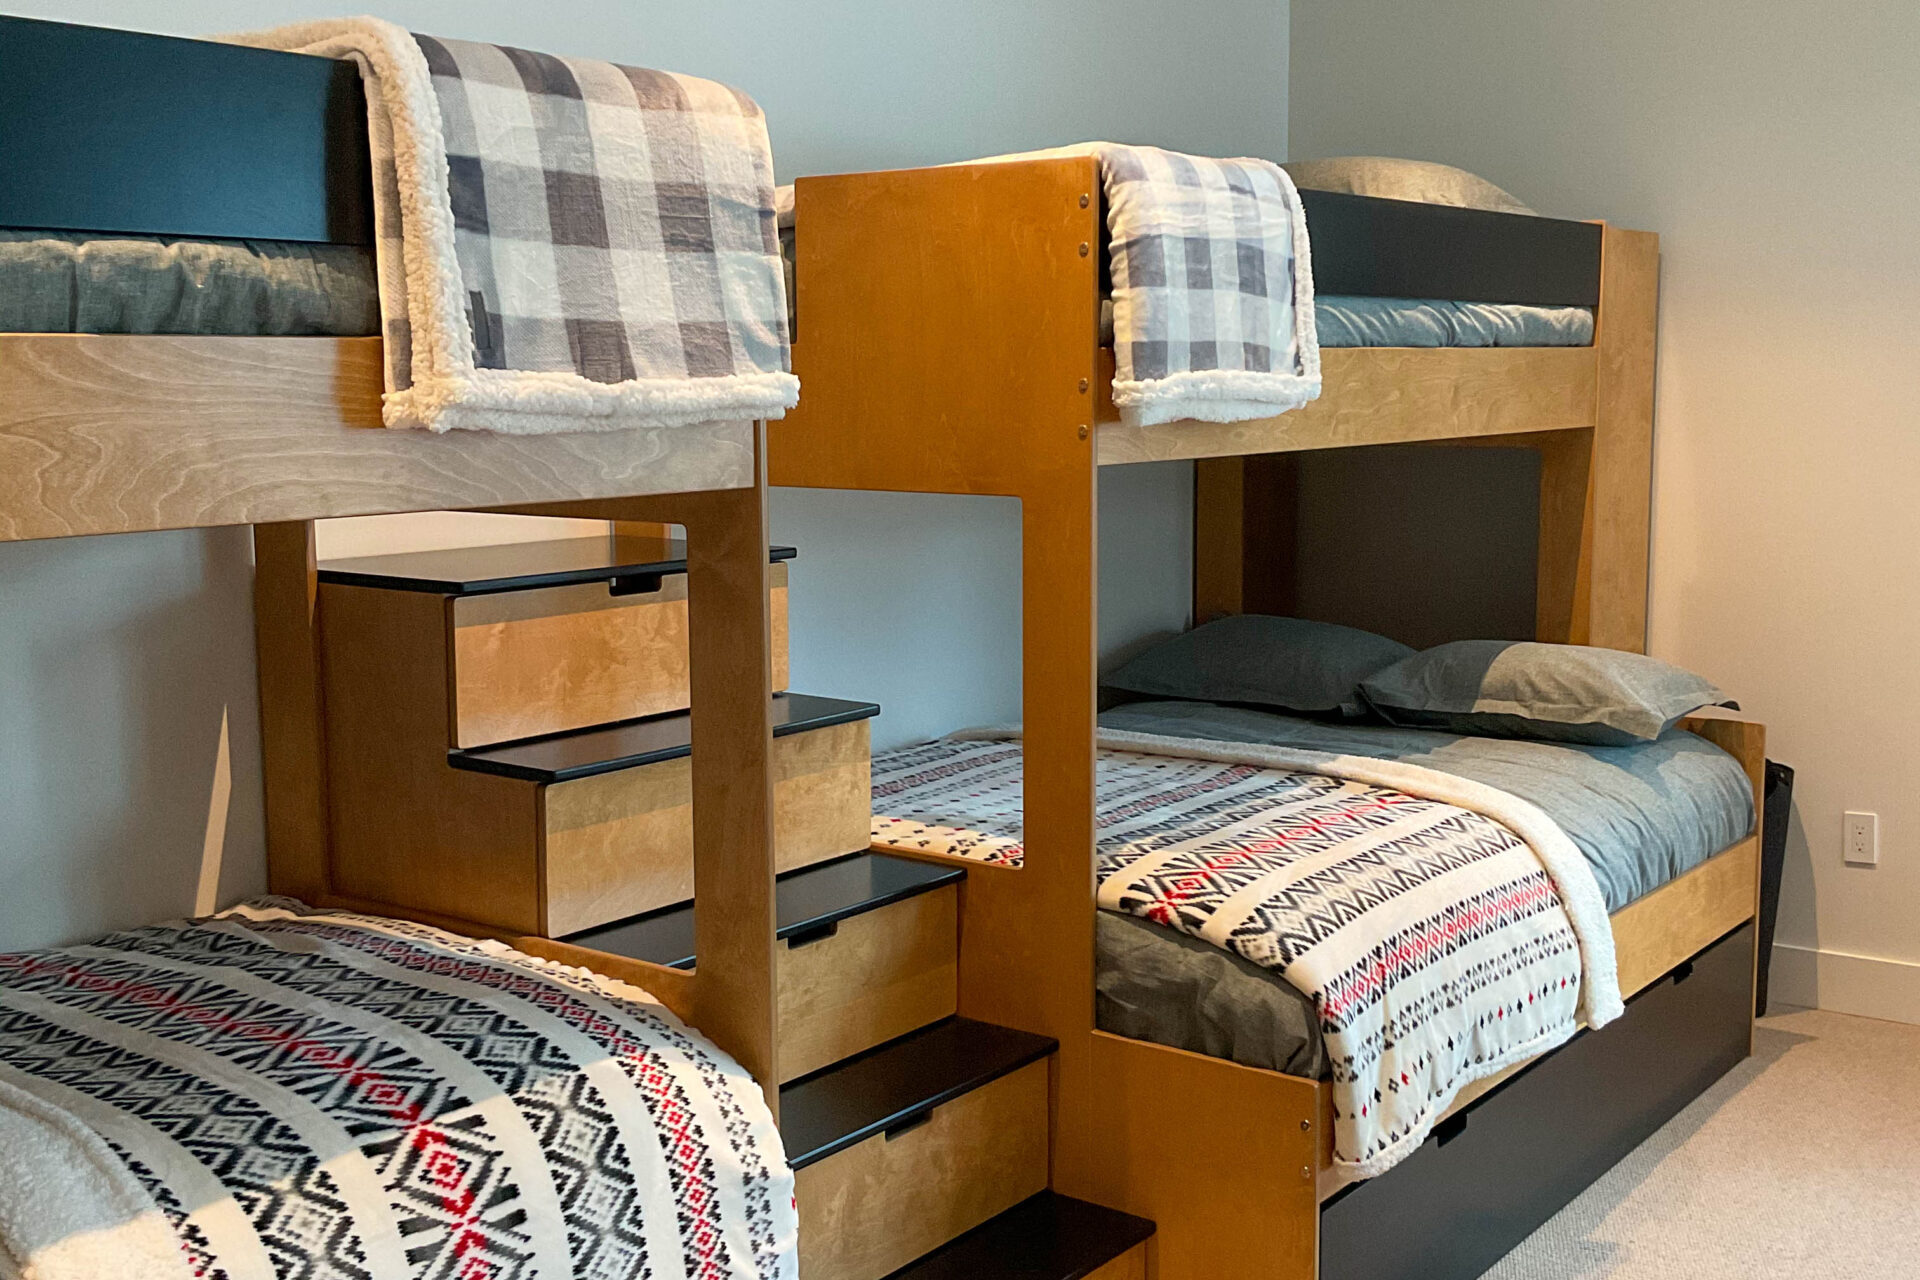 styled bunk beds showing two bunk beds with blankets and pillows